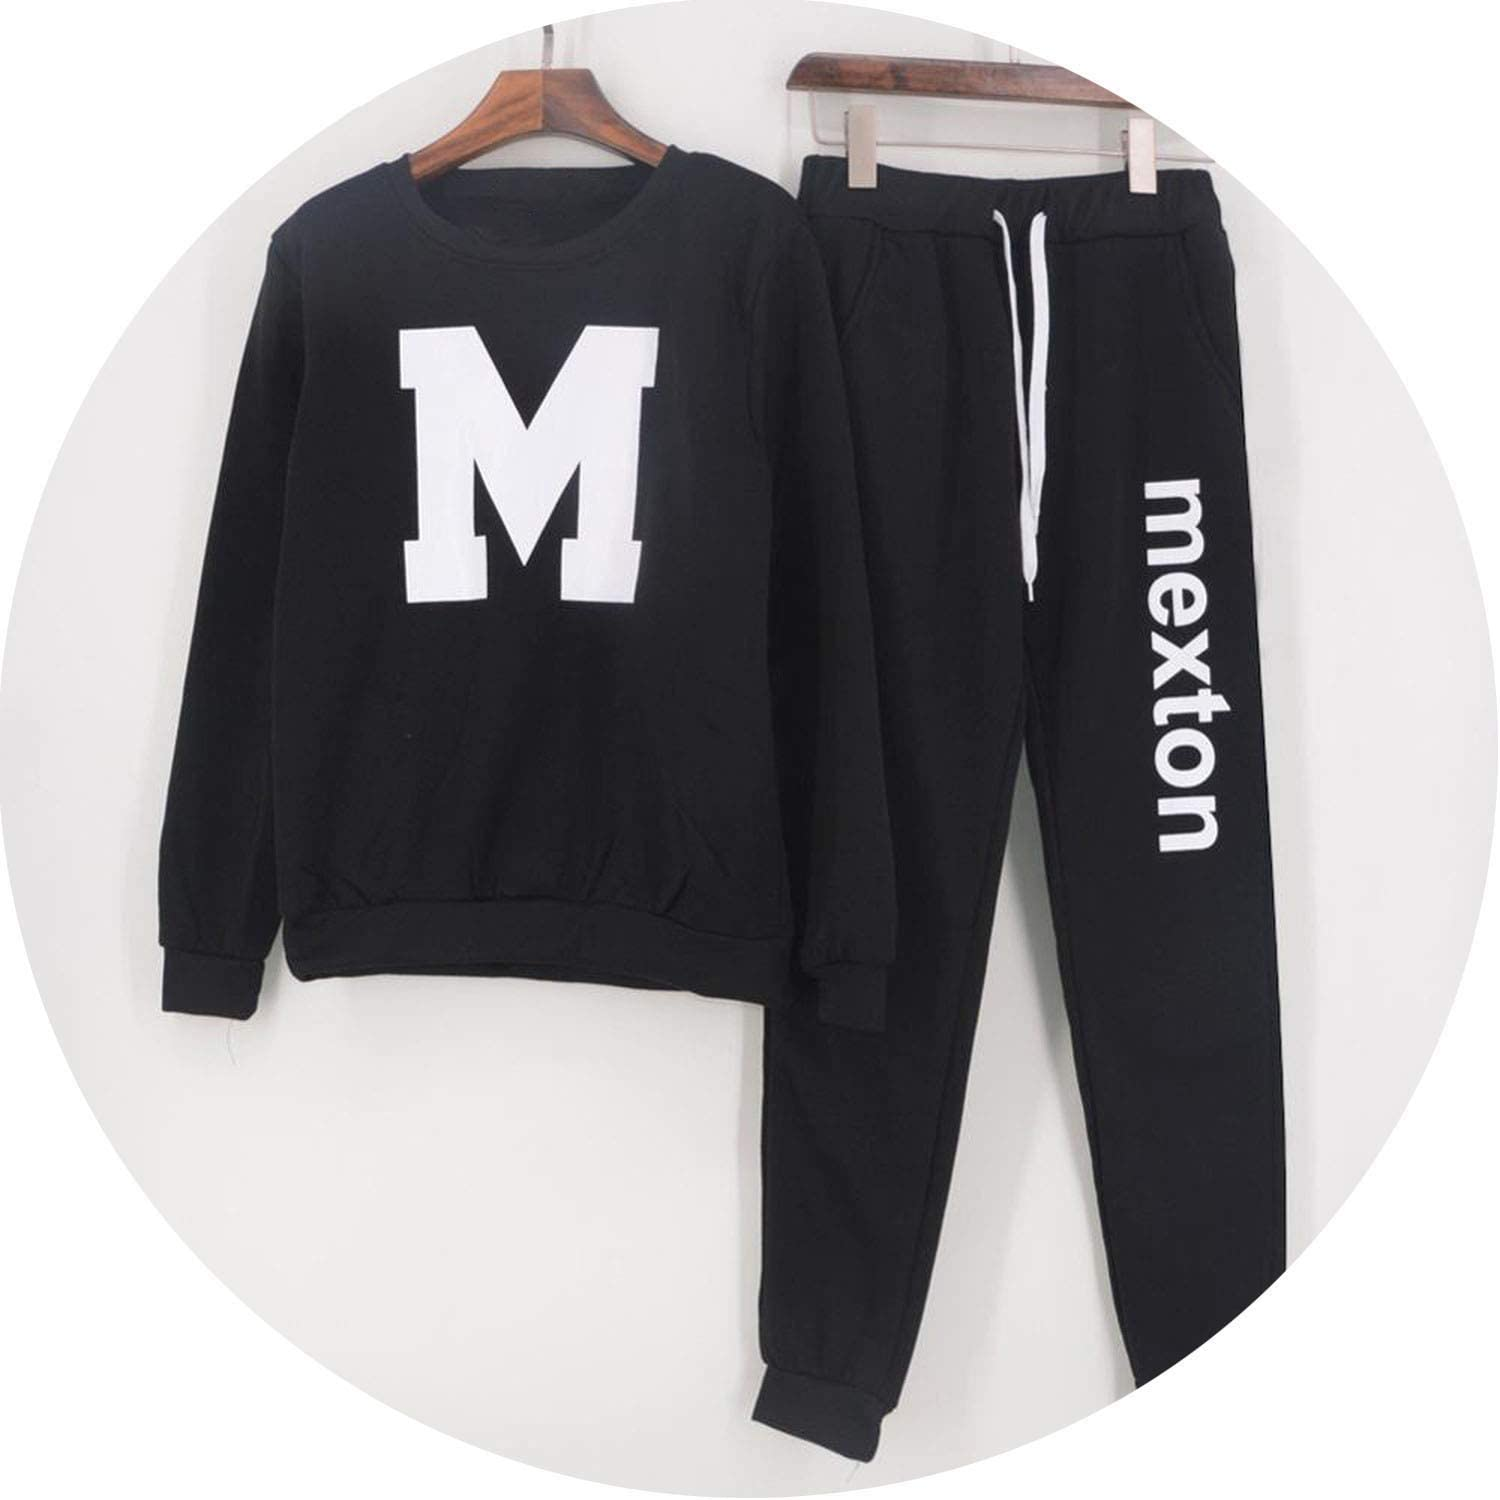 Long Pants Women Casual Sportswear Pullovers 2 Piece Set Womens Tracksuit Autumn Winter Sweatshirt